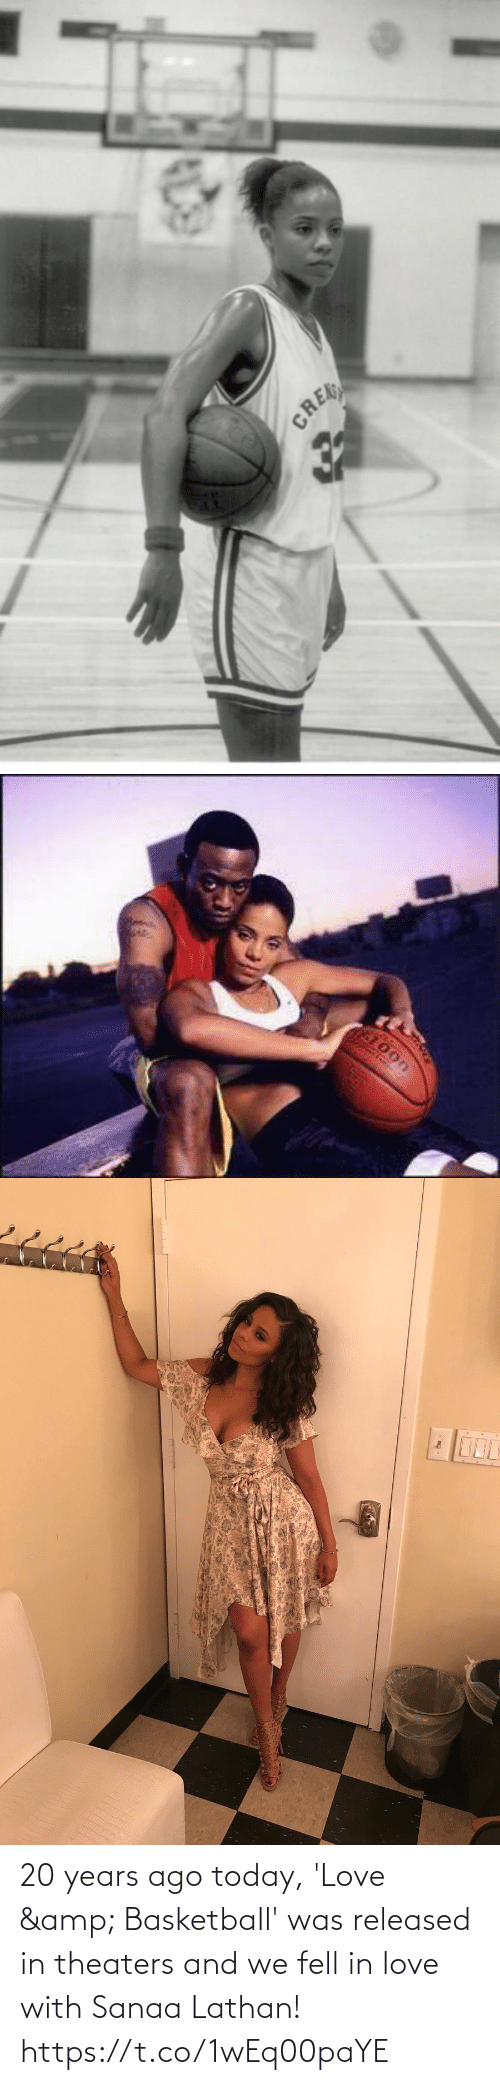 Basketball: 20 years ago today, 'Love & Basketball' was released in theaters and we fell in love with Sanaa Lathan! https://t.co/1wEq00paYE